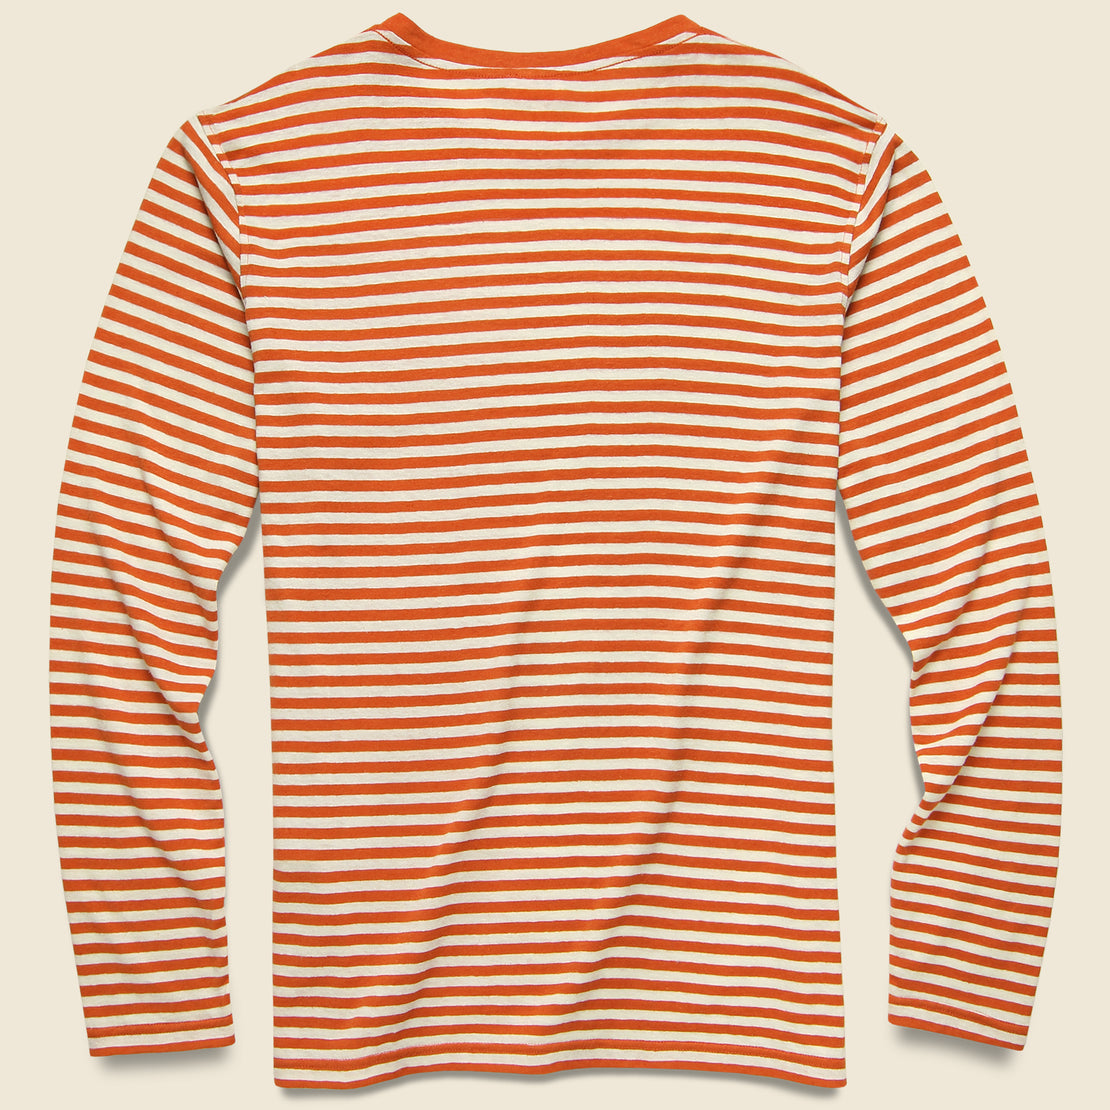 Breton Stripe Tee - Orange